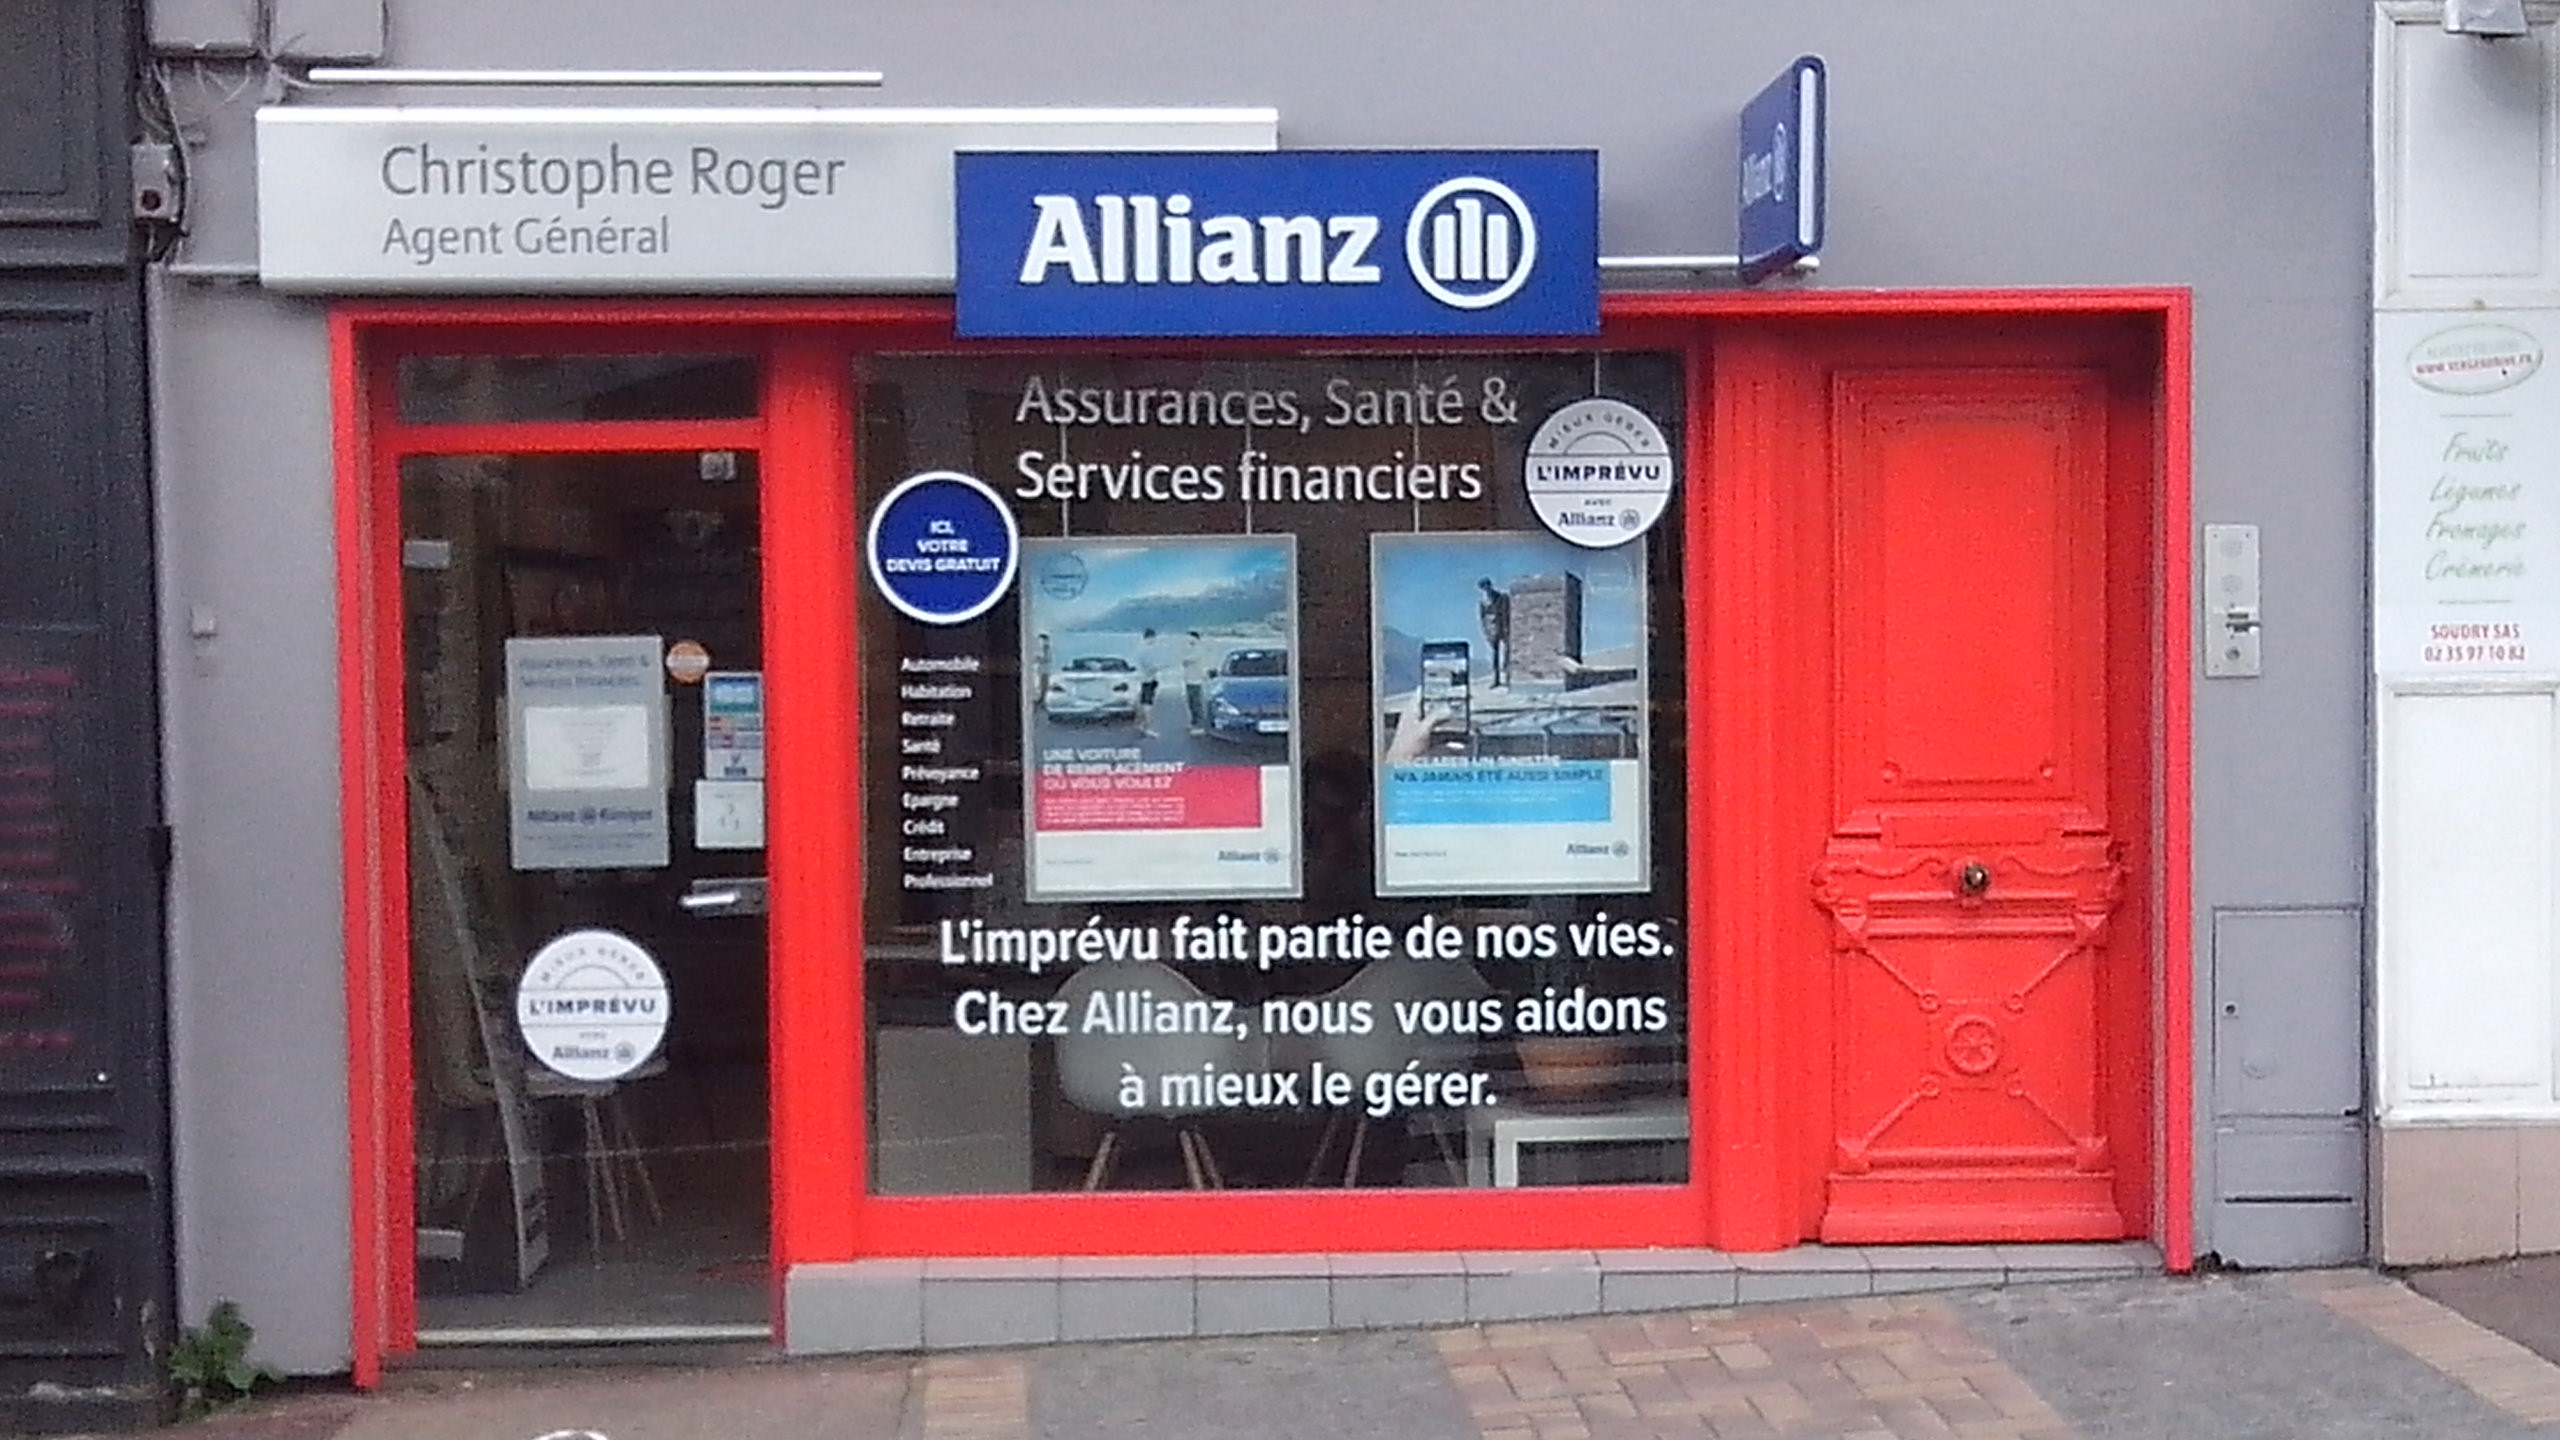 Allianz Cany - Christophe ROGER